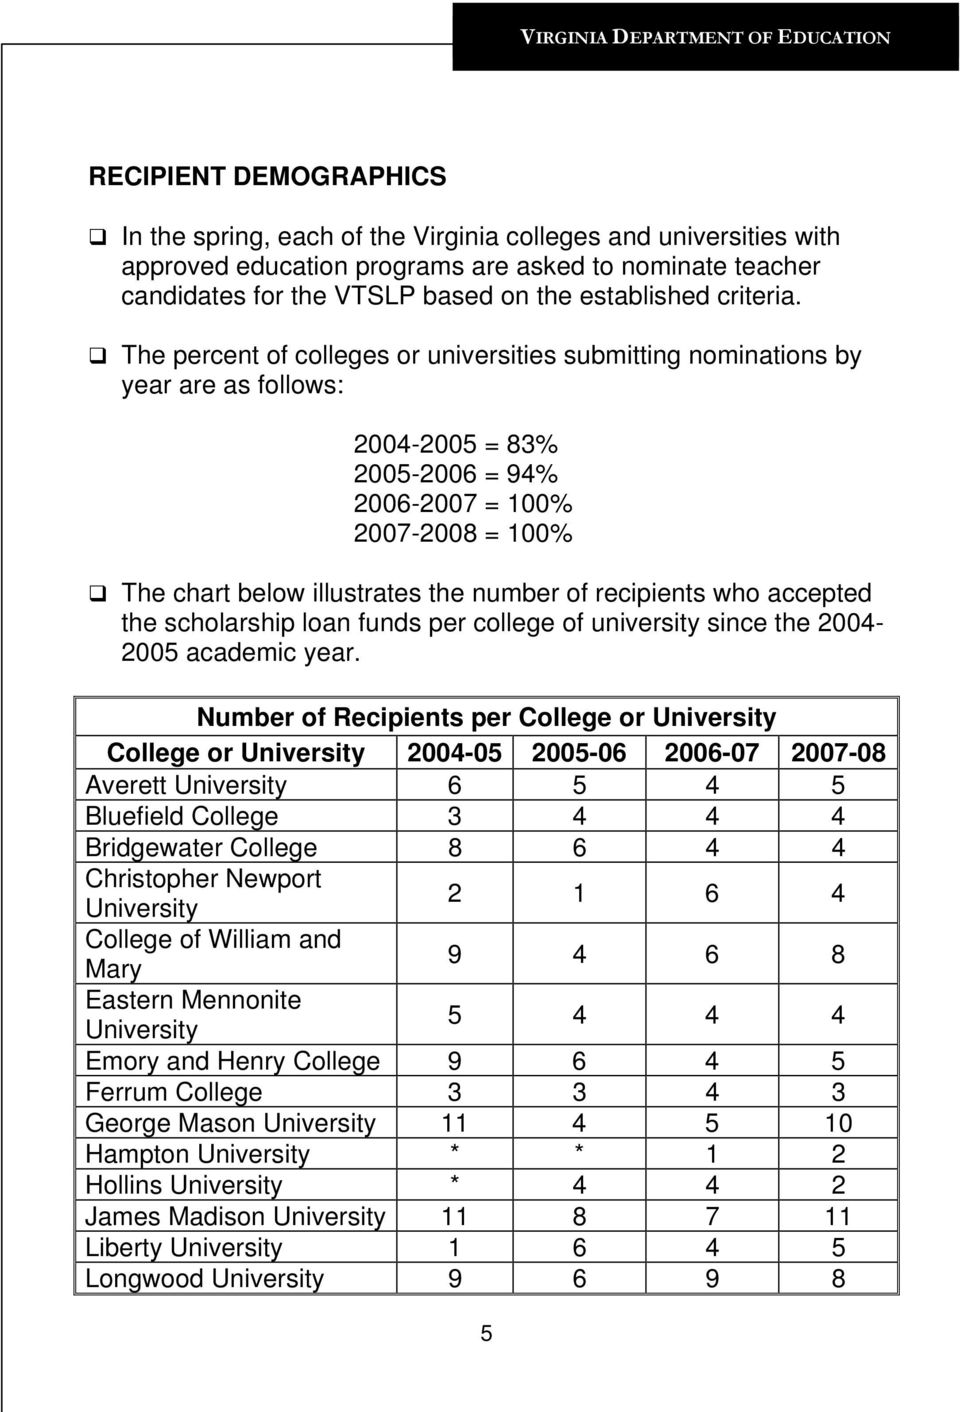 The percent of colleges or universities submitting nominations by year are as follows: 2004-2005 = 83% 2005-2006 = 94% 2006-2007 = 100% 2007-2008 = 100% The chart below illustrates the number of